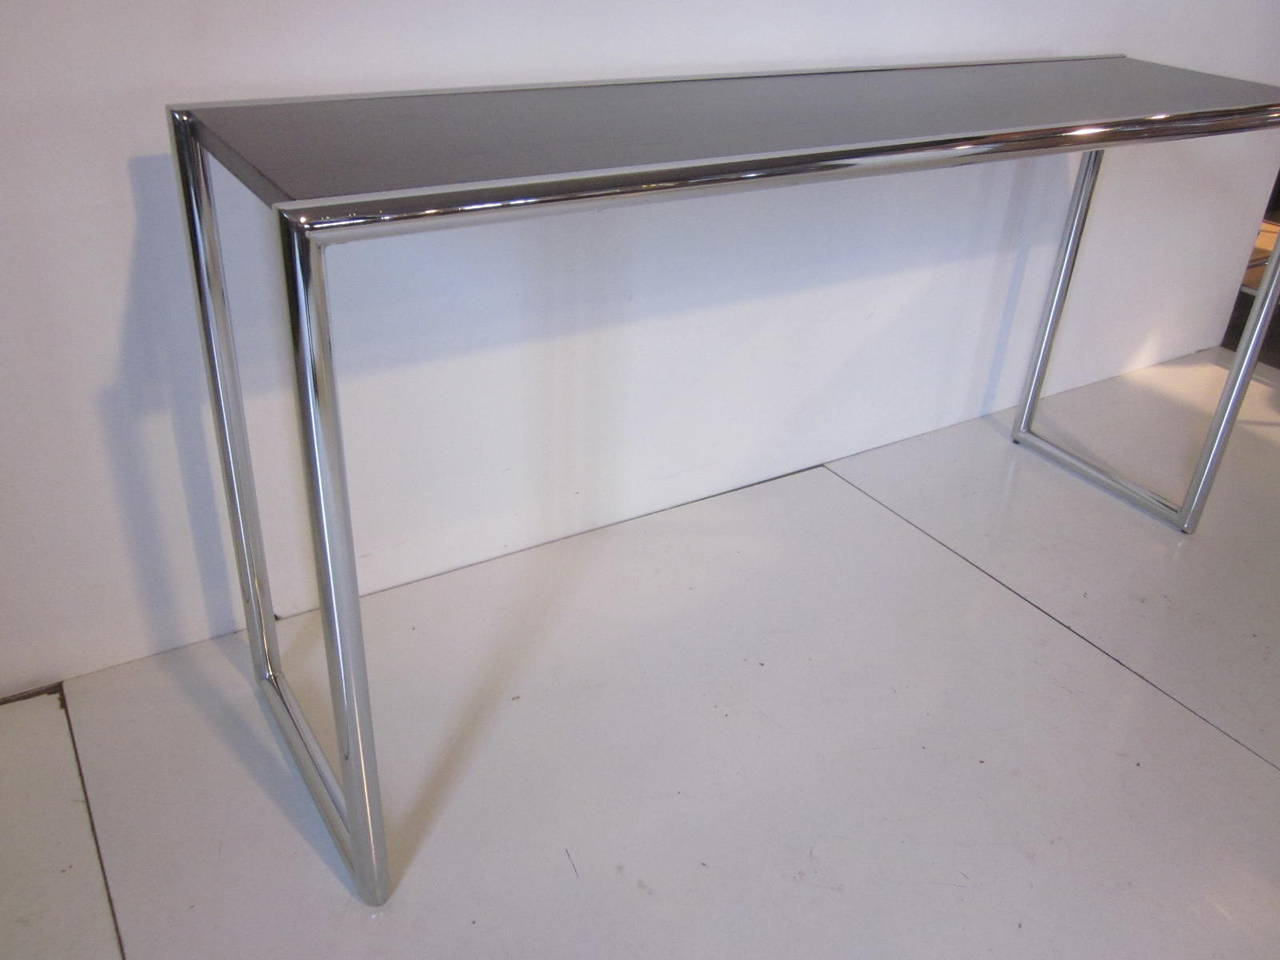 A chrome tubed console table with a dark ebony toned wood top, a clean and tailored design form from the 1970s in the manner of Milo Baughman.